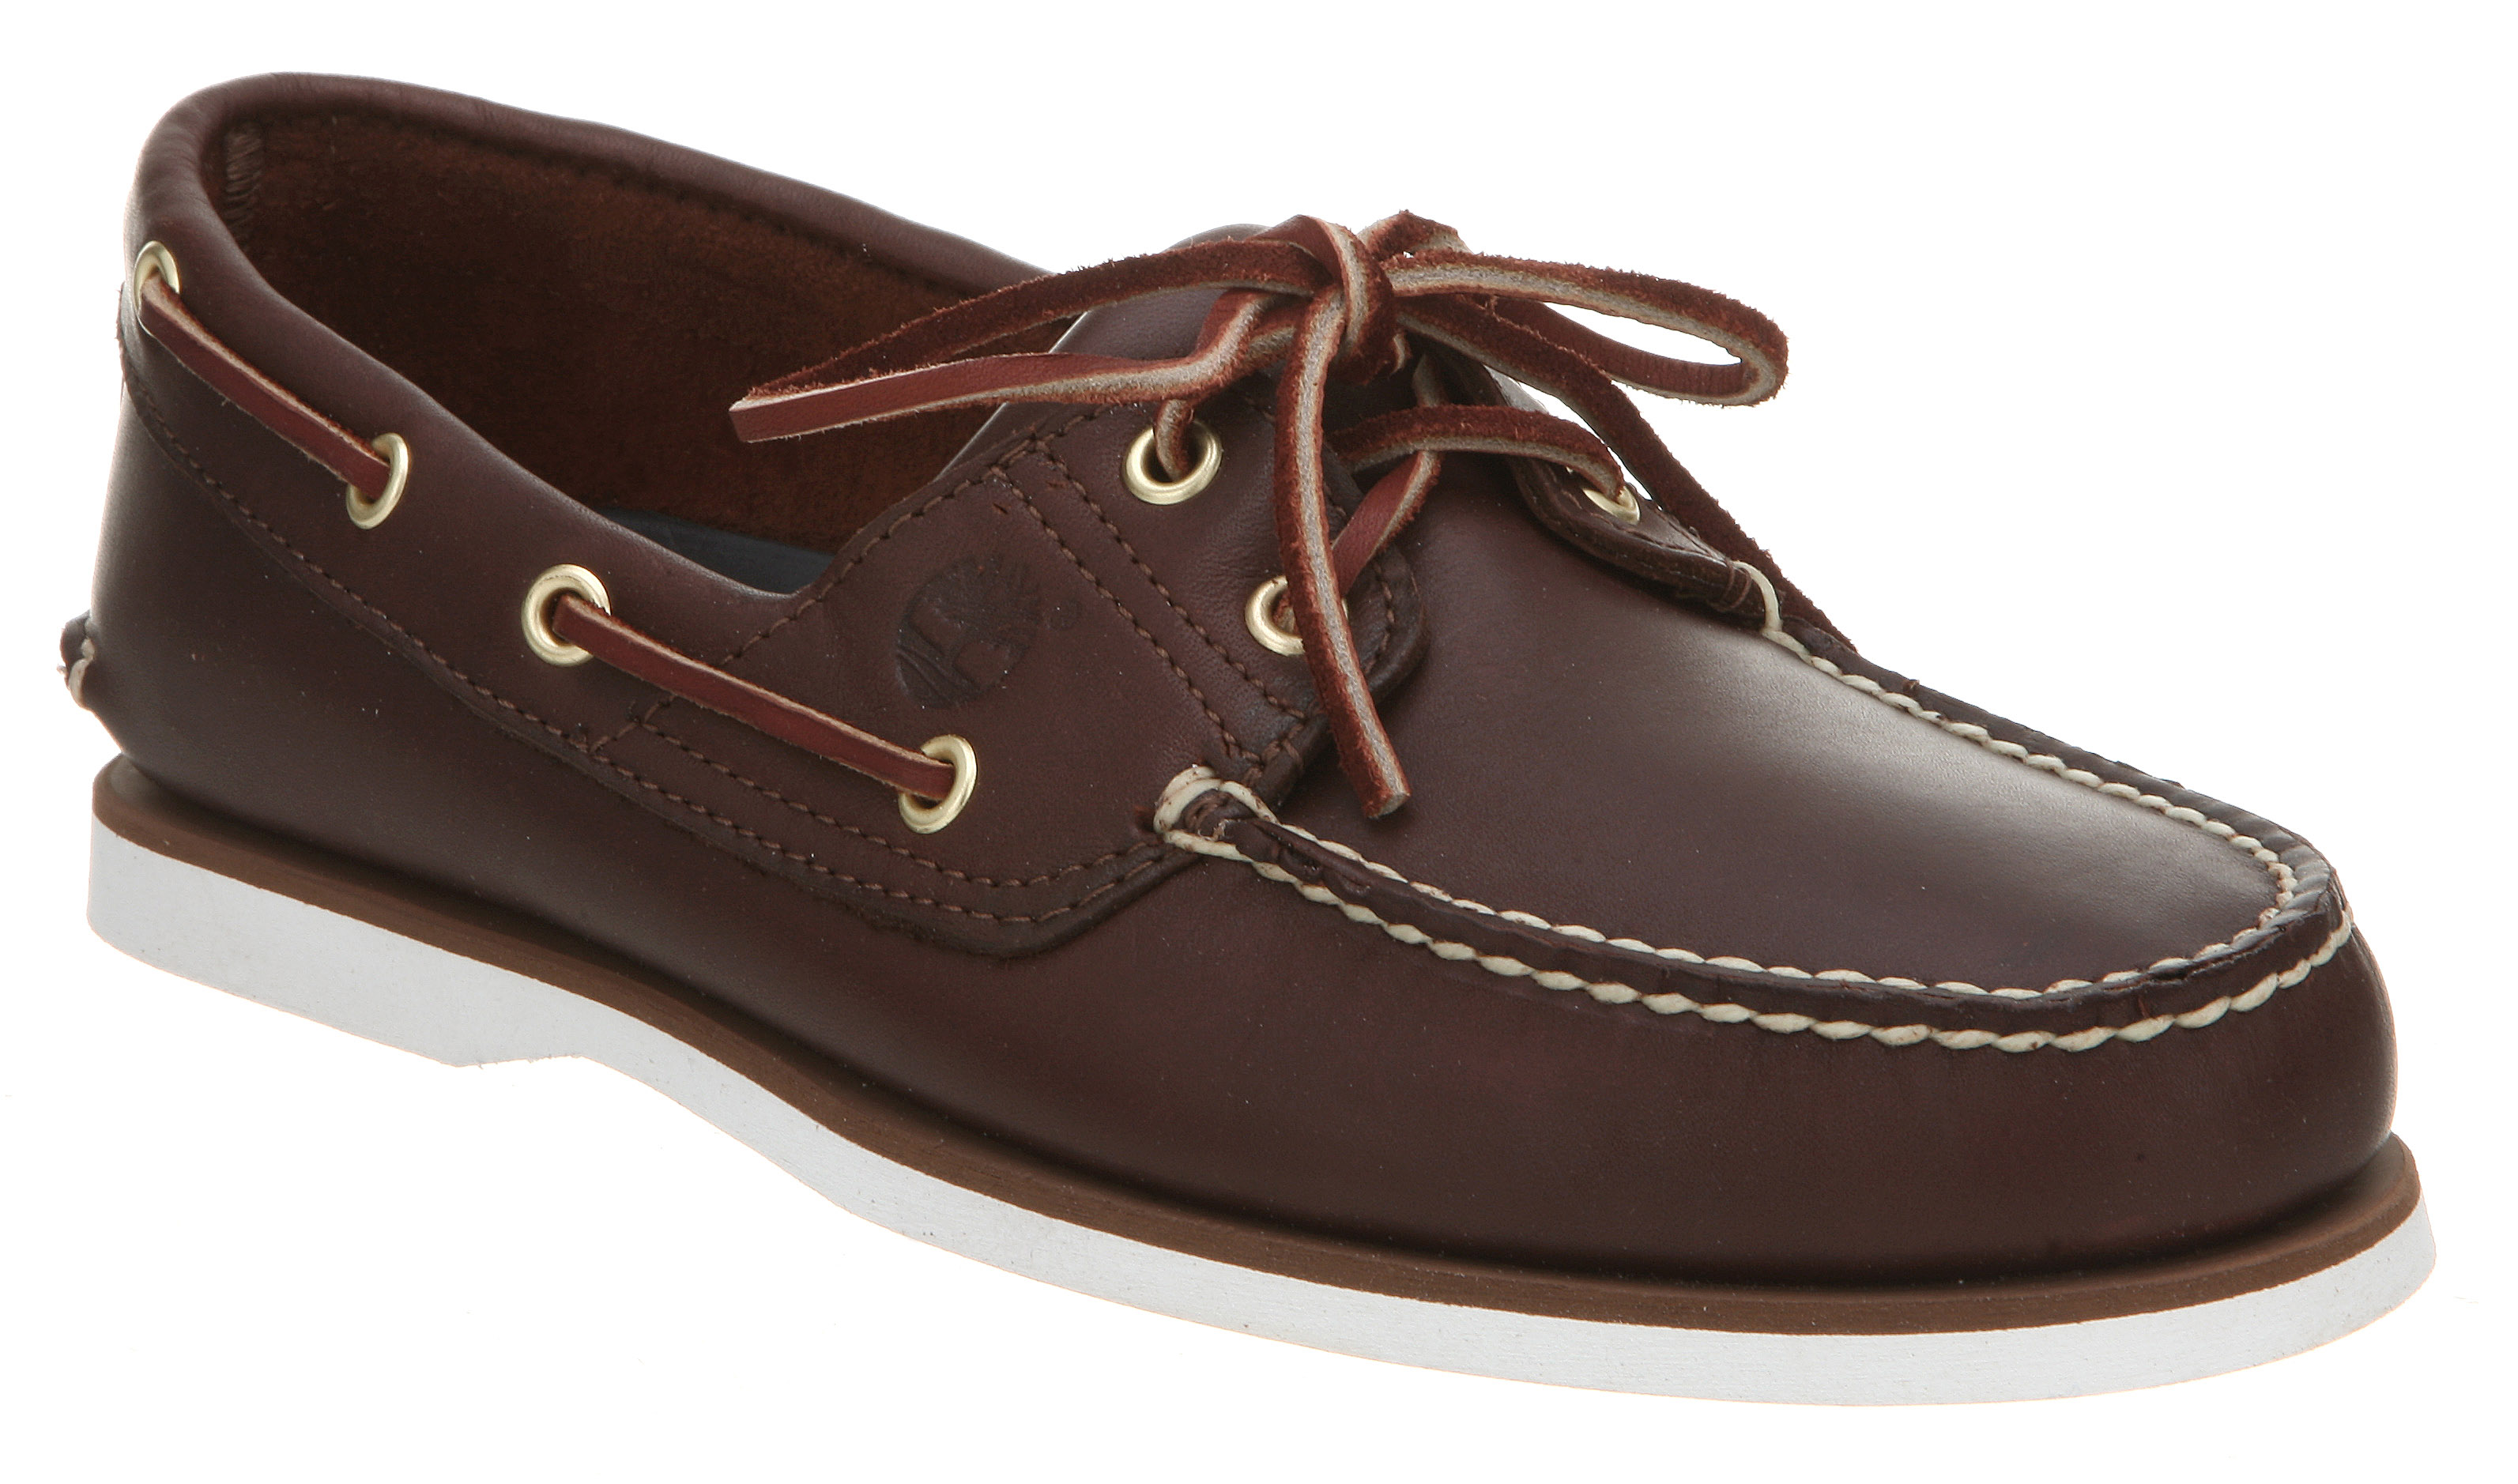 mens timberland new boat shoe brown leather shoes ebay